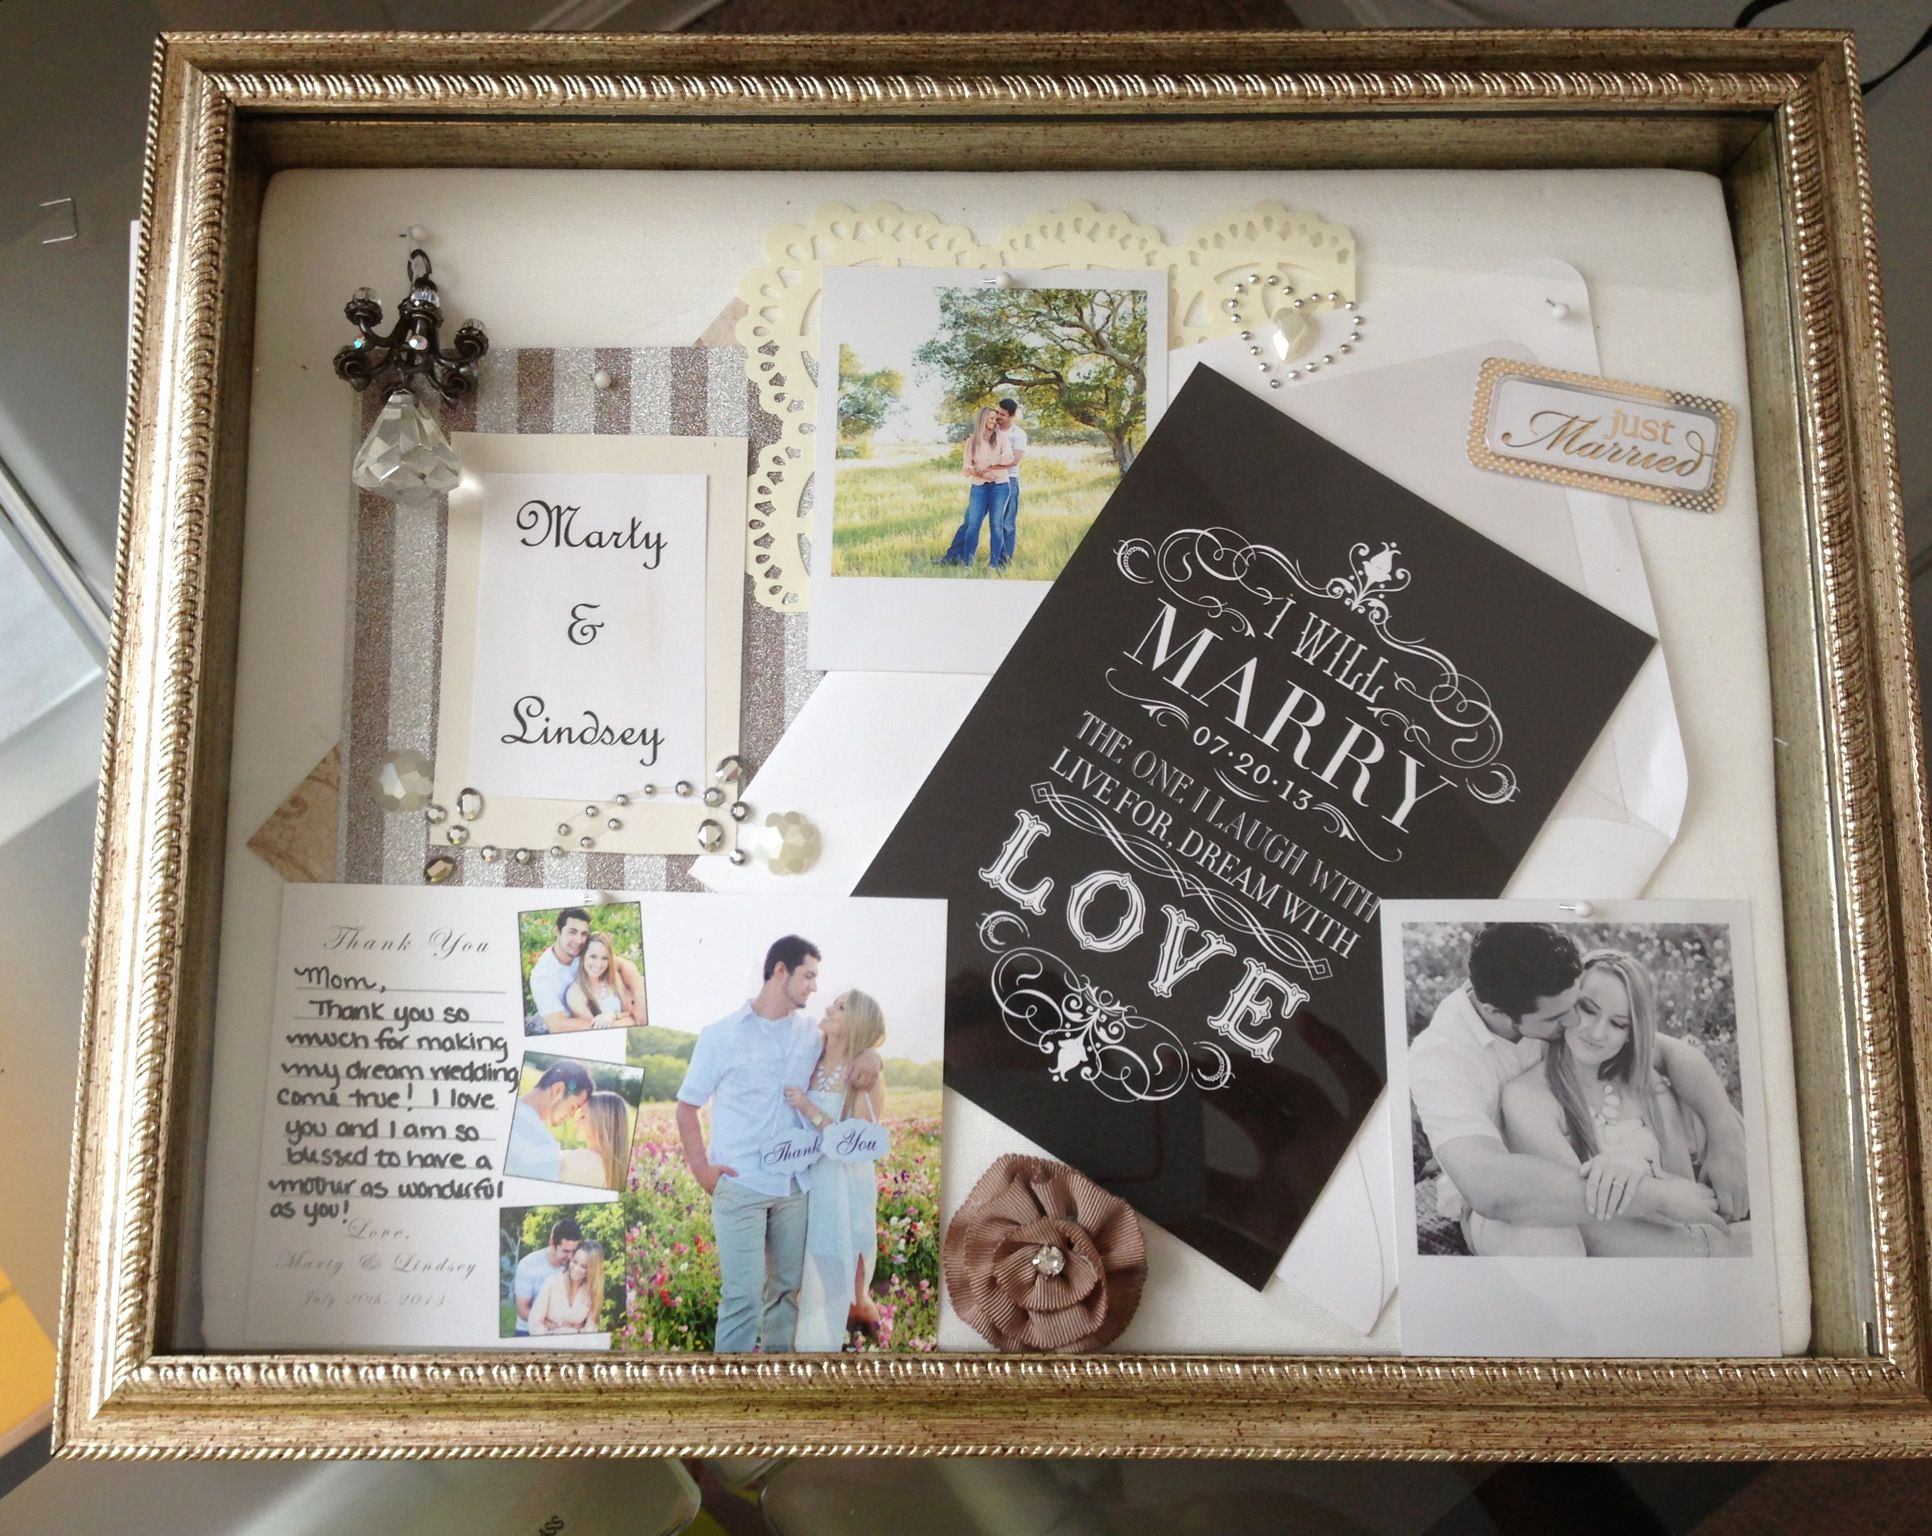 Wedding Invitation Shadow Box Ideas Beautiful Shadow Box Wedding Thank You T to Mom